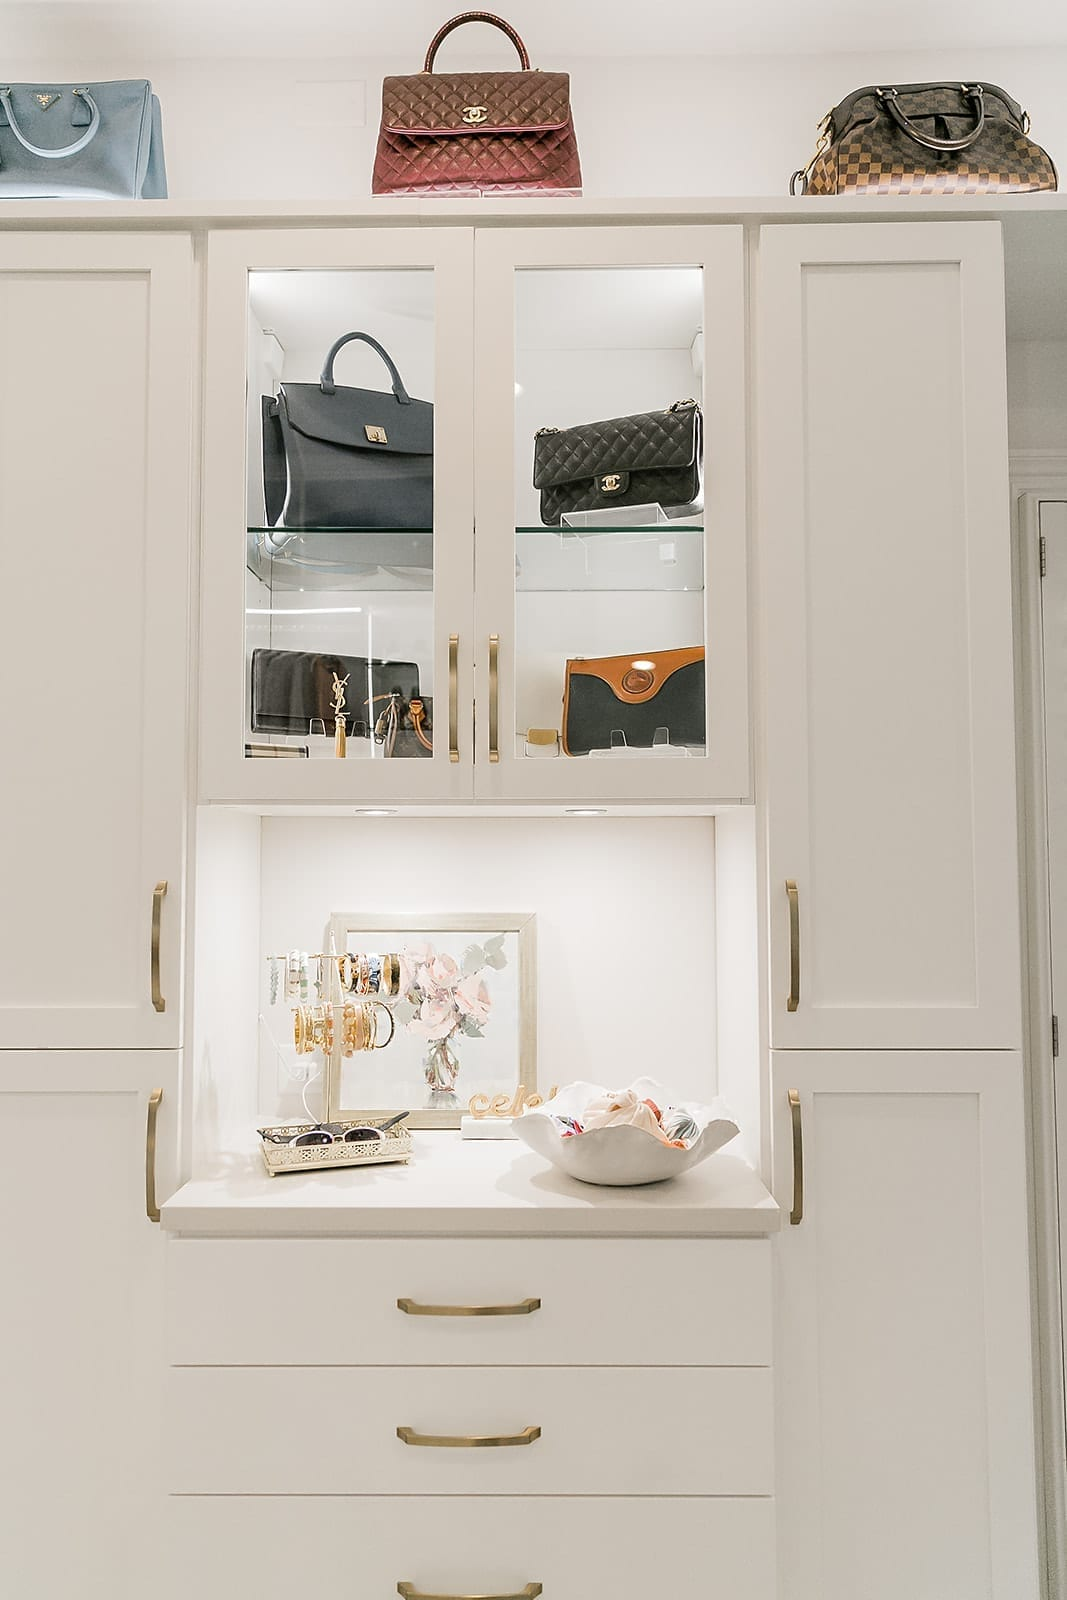 How to display handbags. Designer closet with handbag display behind glass shelves. Display jewelry with scarf storage.